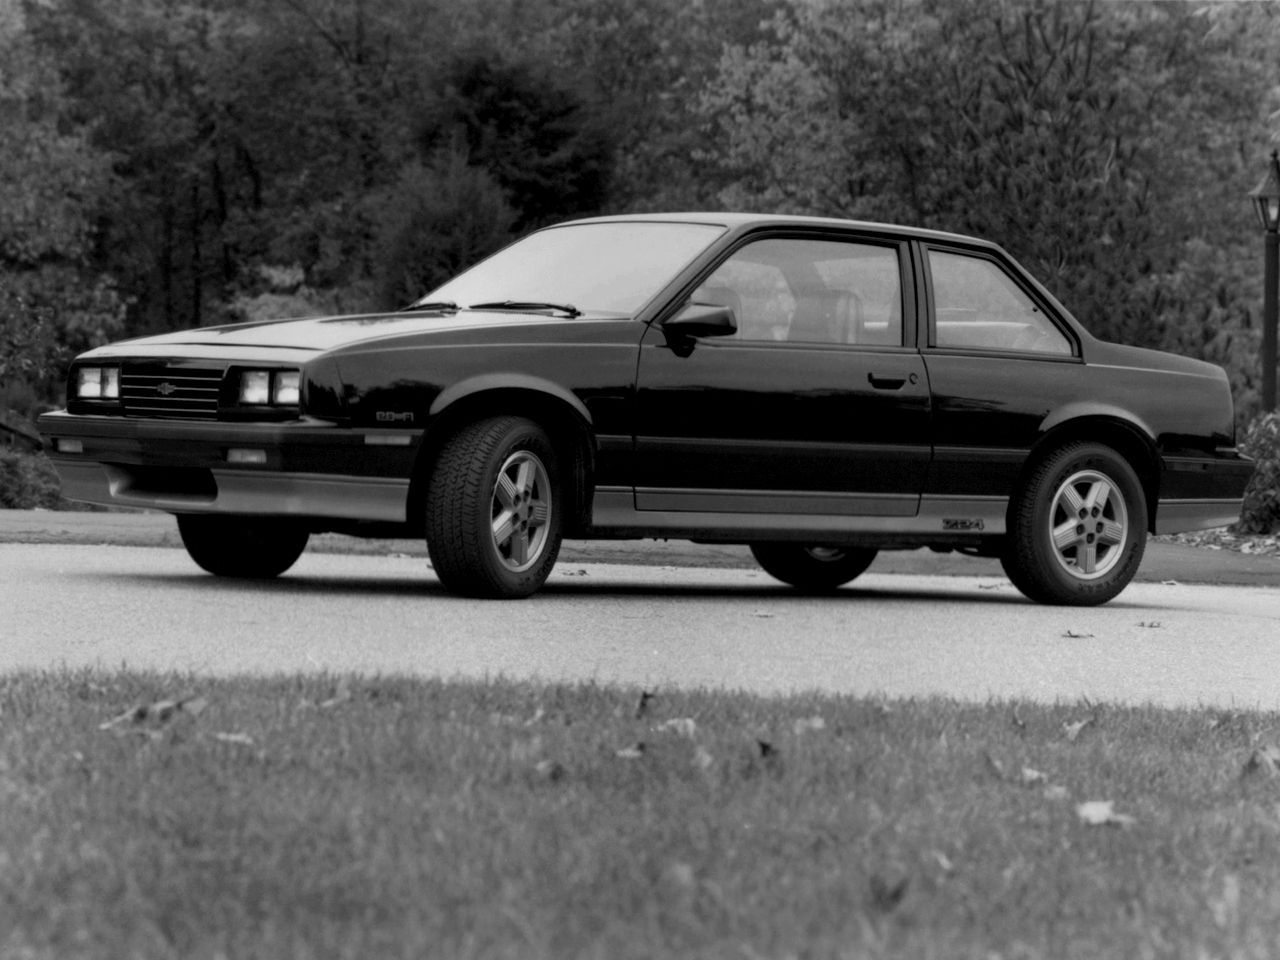 Chevrolet Cavalier Z24 Coupe 1984 1987 Chevrolet Cavalier Dream Cars Chevrolet